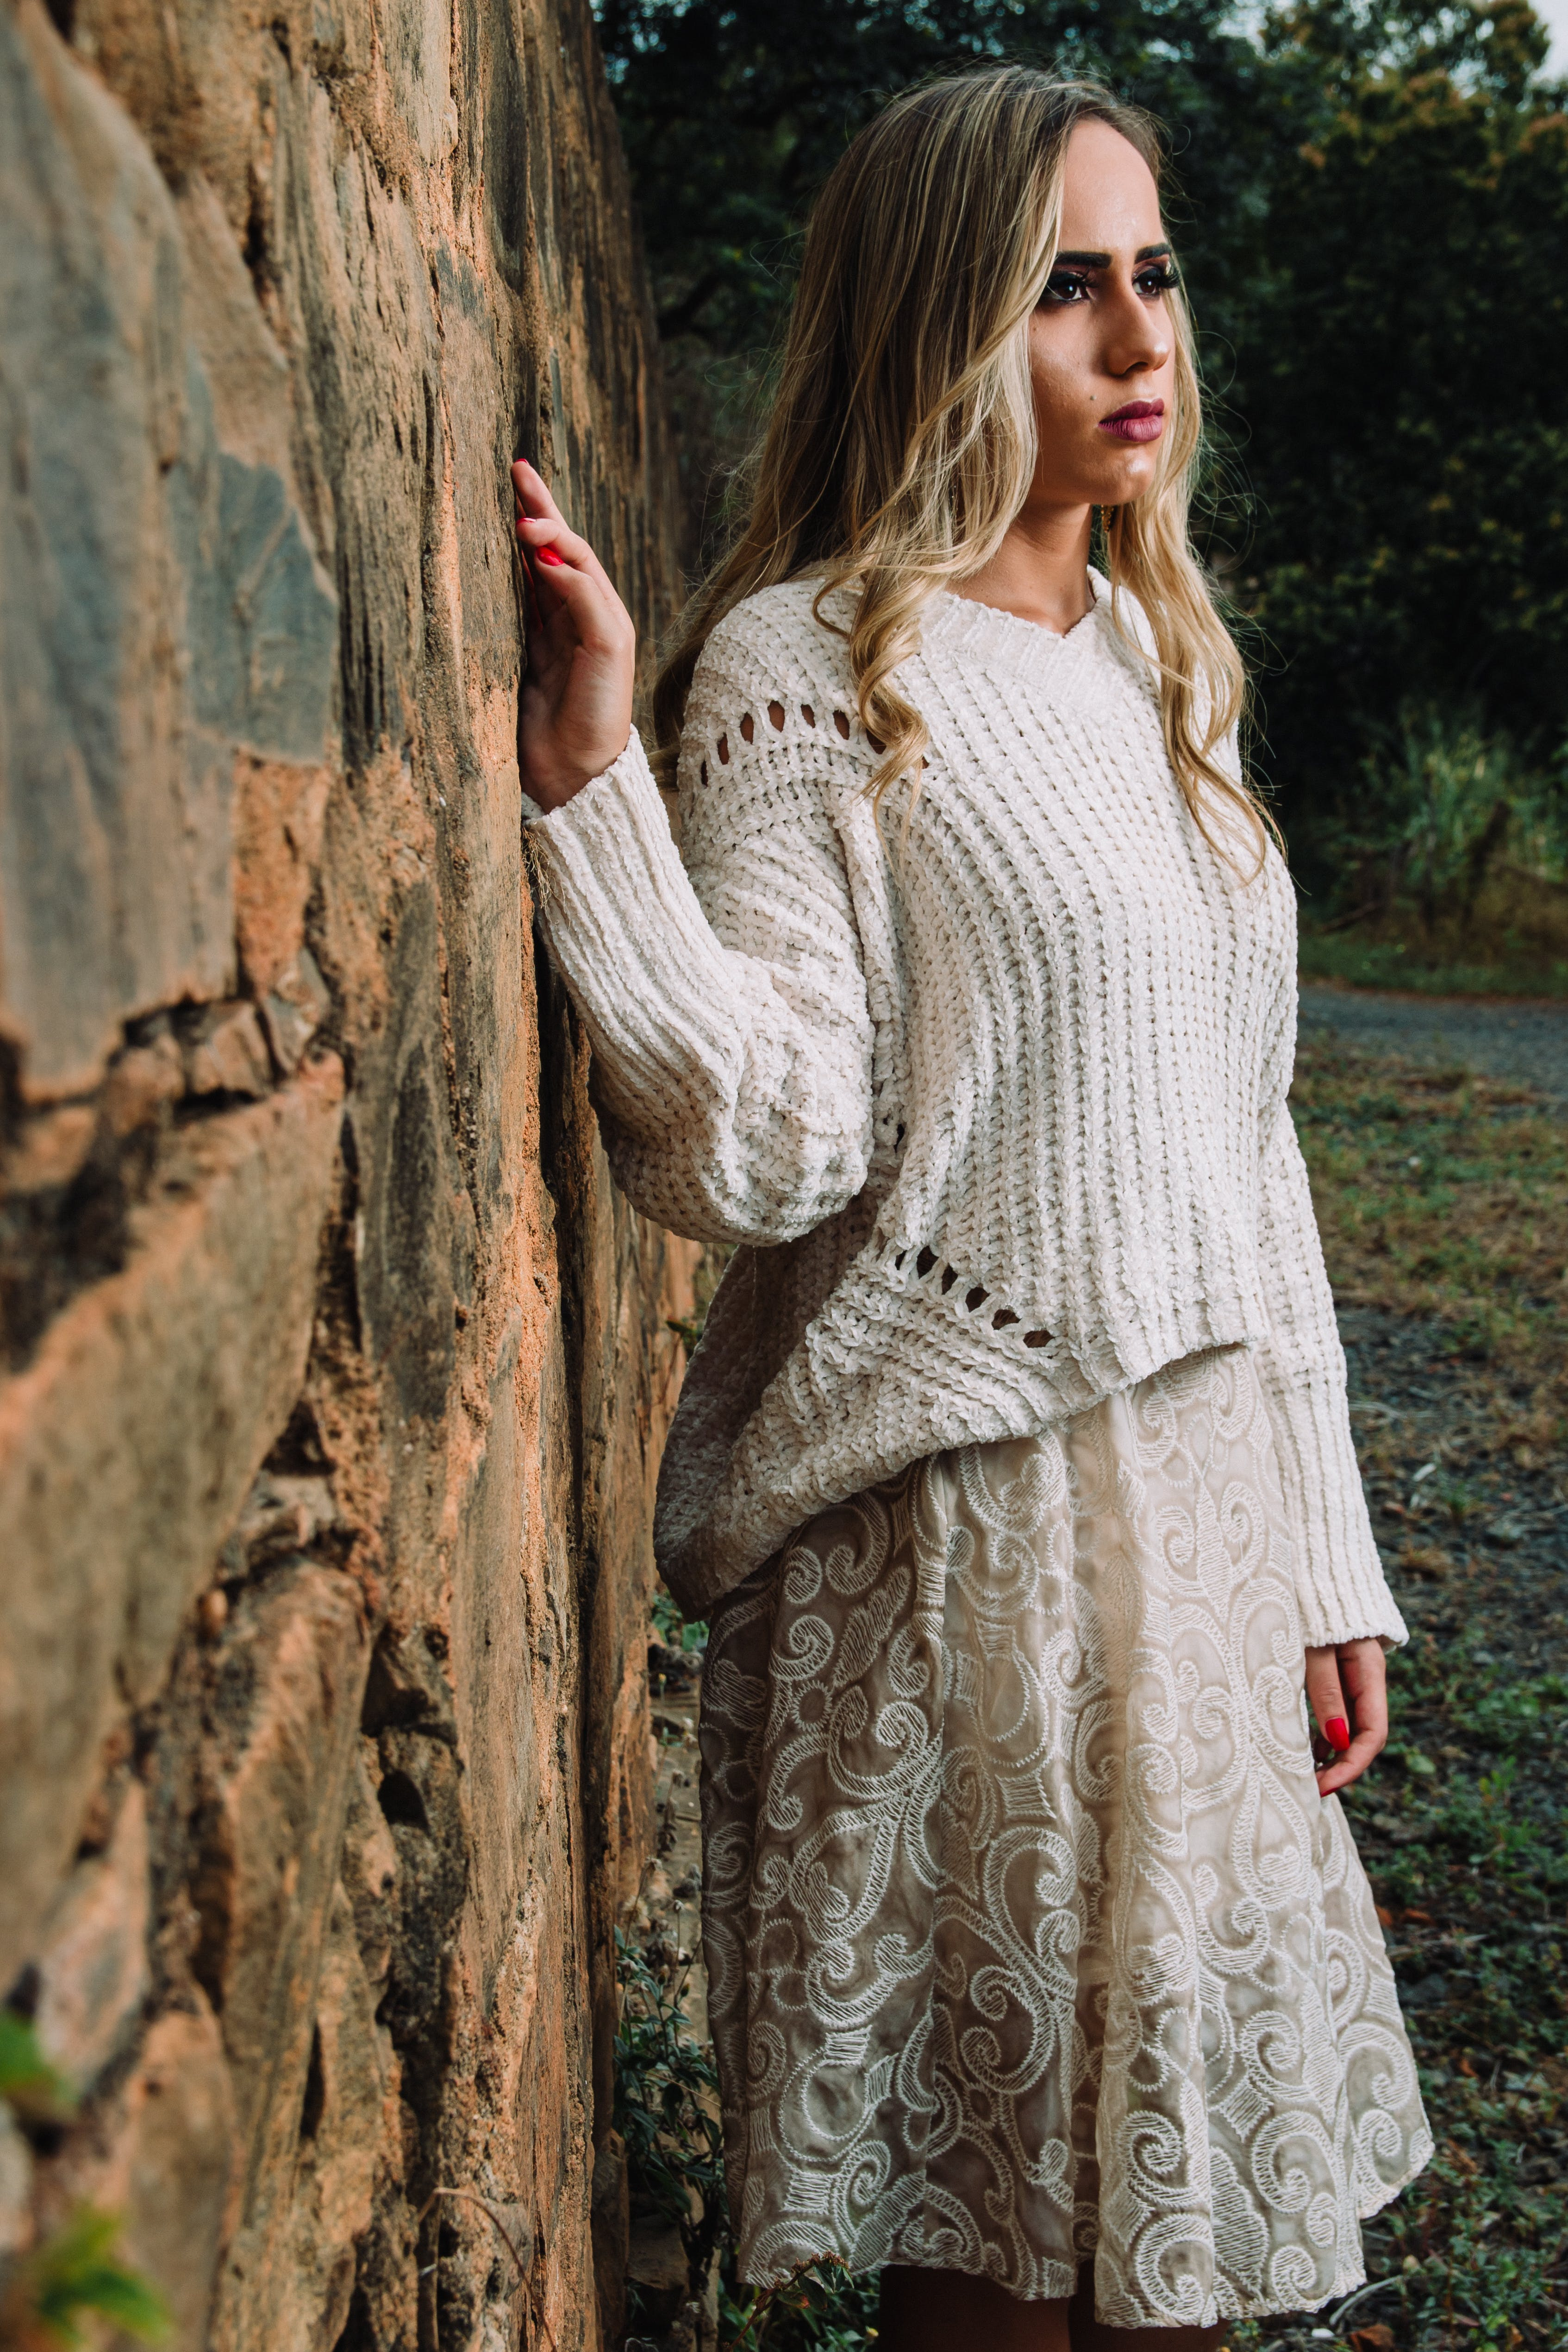 Woman in Knitted V-neck Long-sleeved Shirt and Midi Skirt Standing Beside Wall